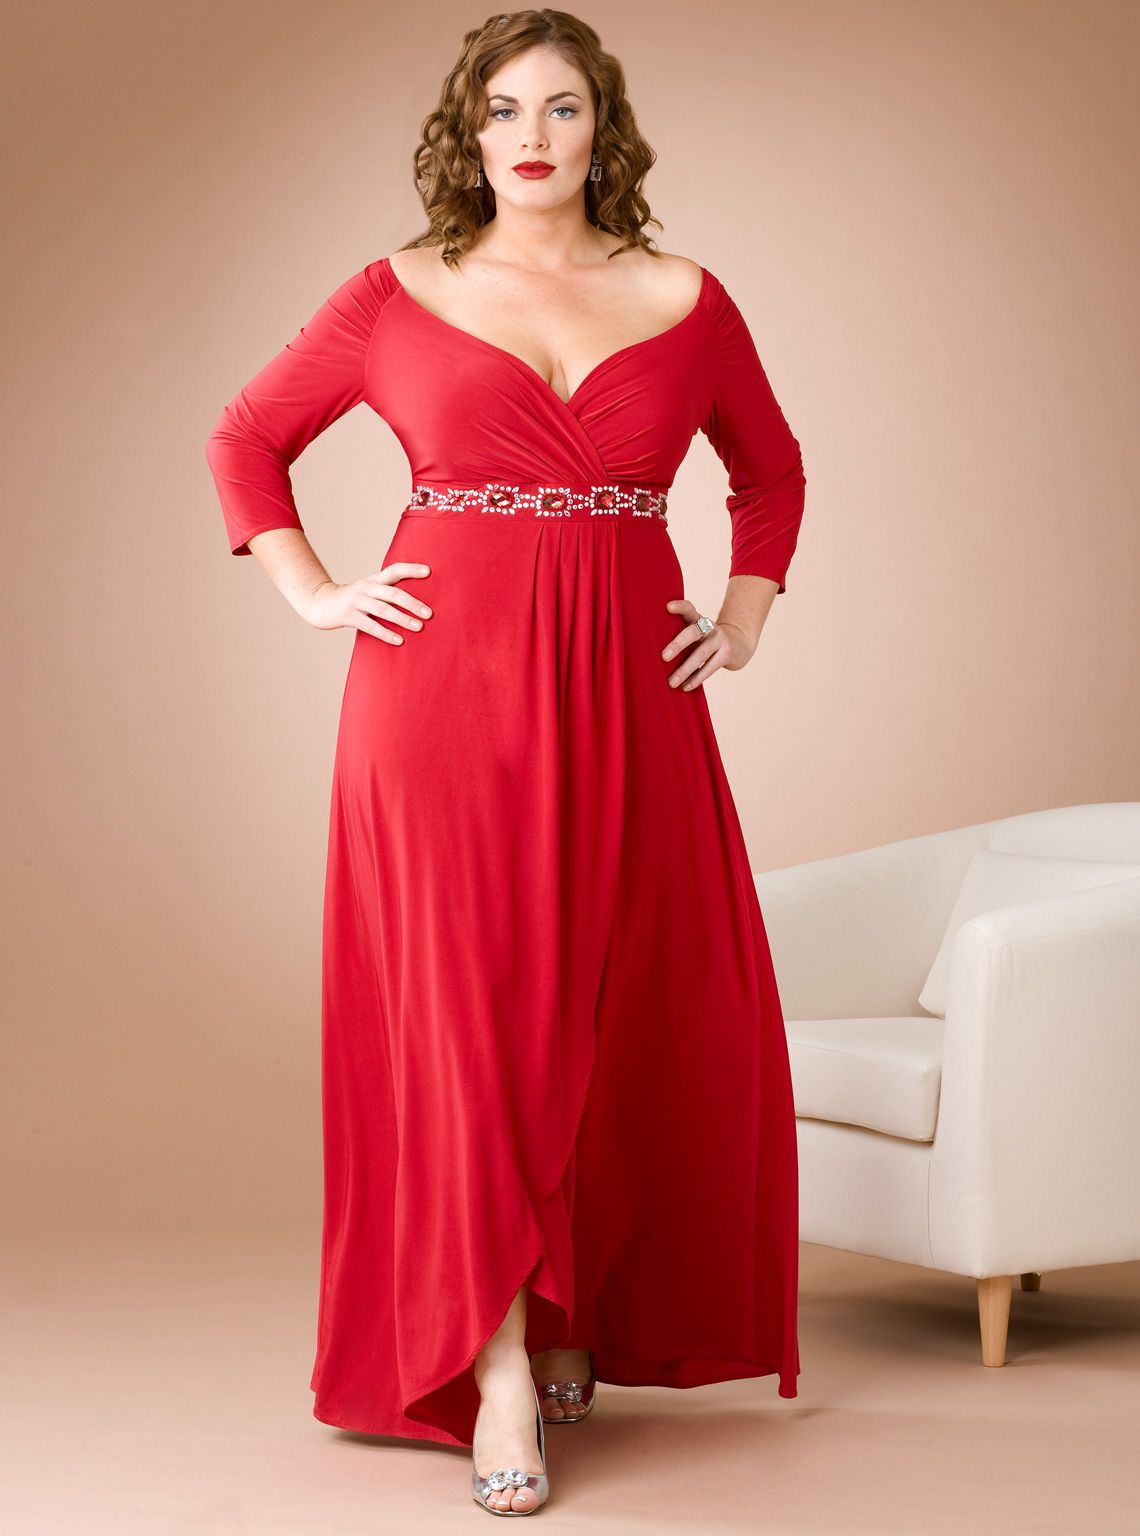 60 christmas party dresses for women over 50s  plus size